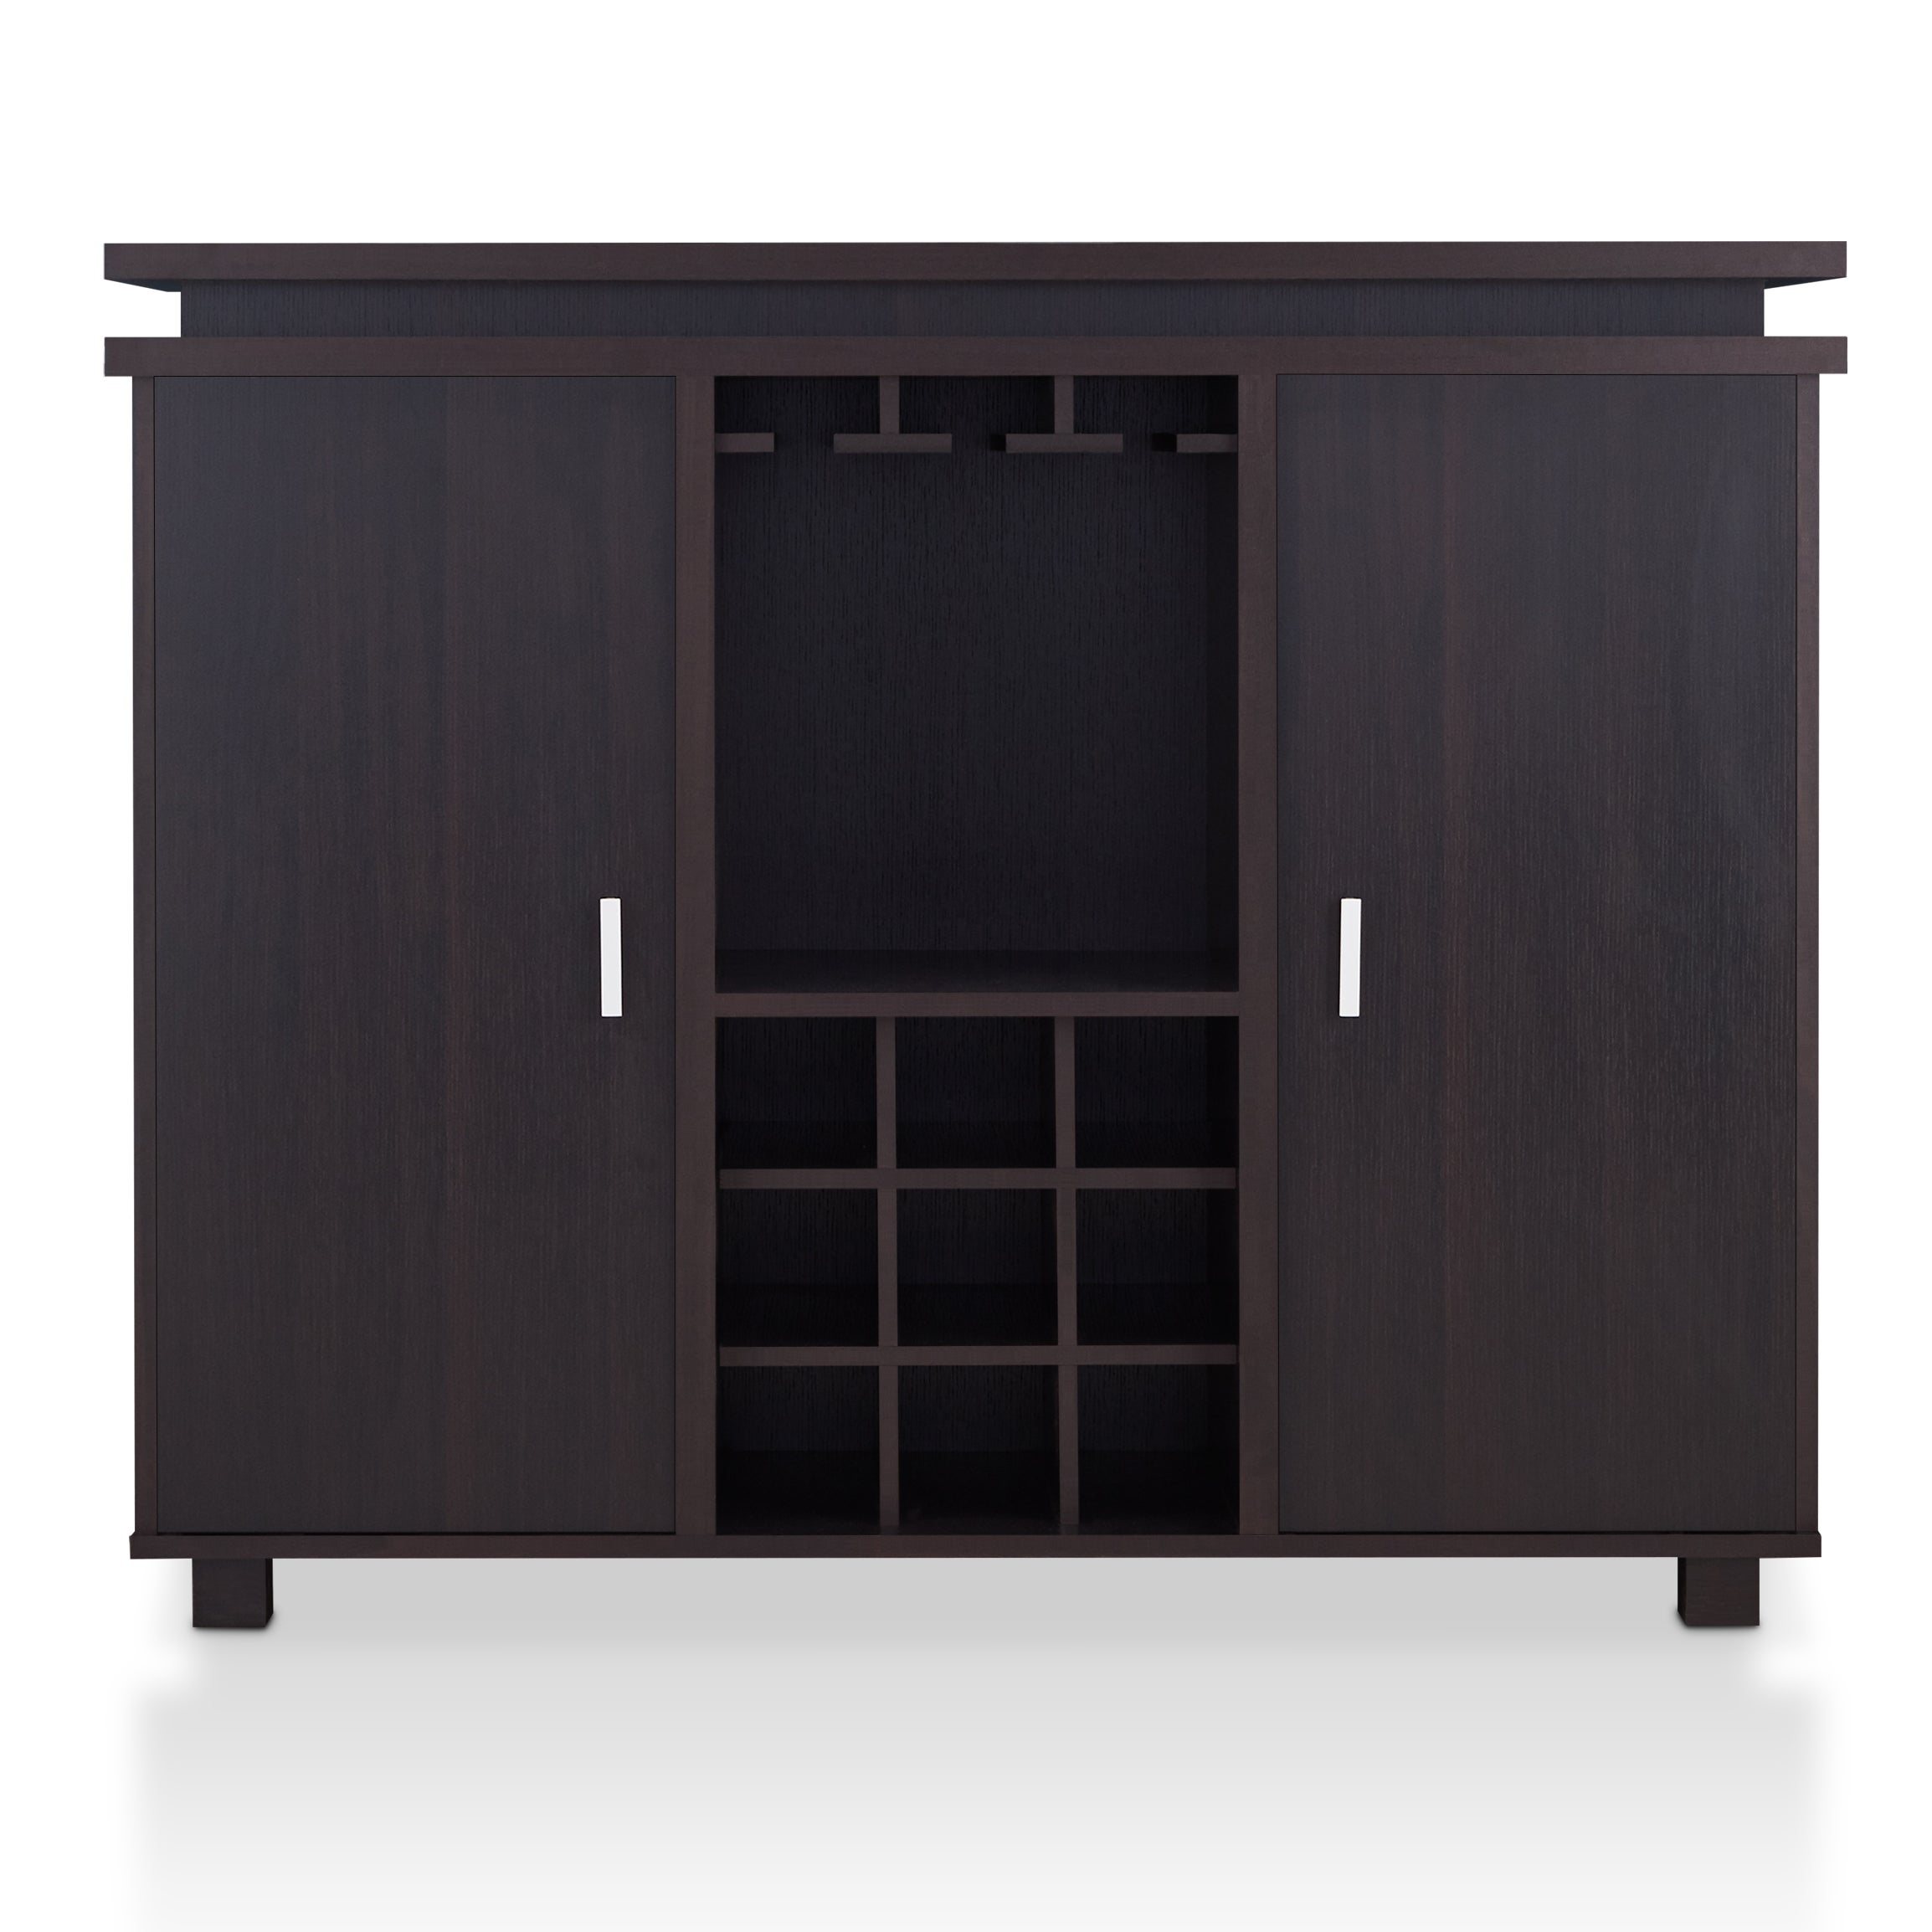 Furniture Of America Mirande Contemporary Espresso Dining Buffet With Wine Storage Within Contemporary Espresso Dining Buffets (View 11 of 30)